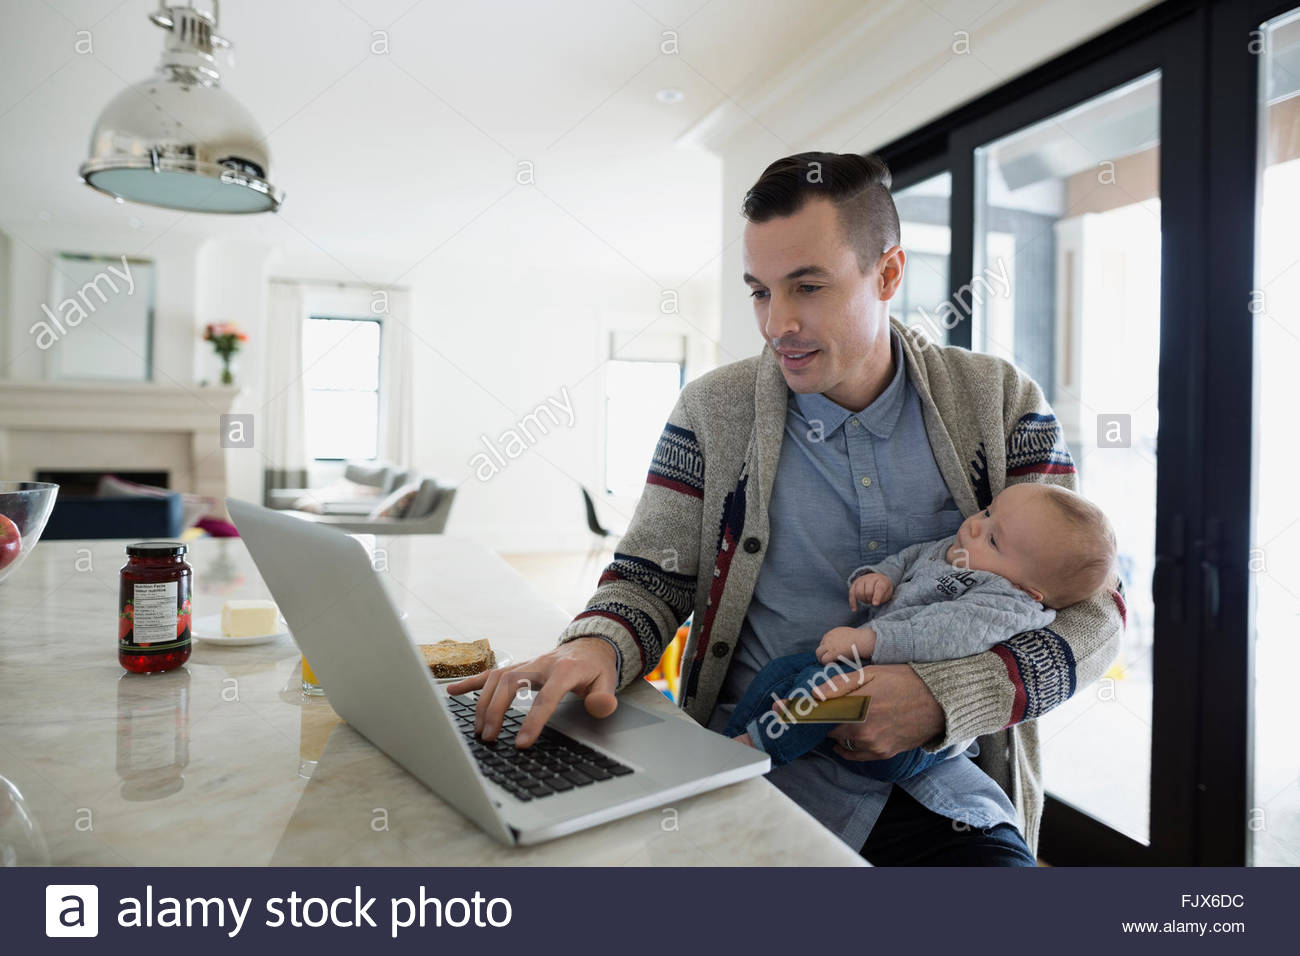 Père et fils baby working at laptop Photo Stock